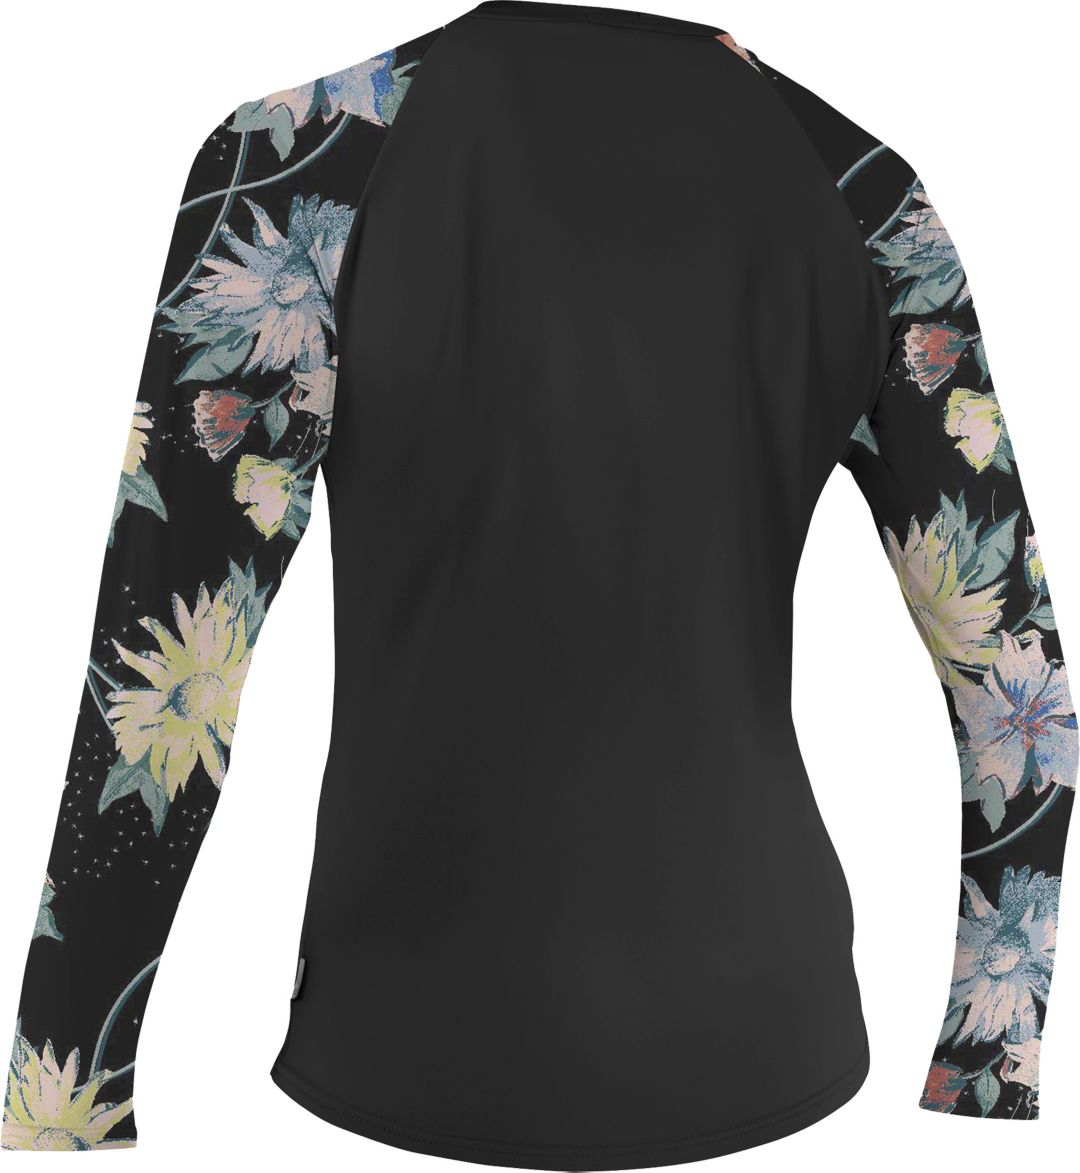 ce3d6d2325 O'Neill Women's Sleeve Print Long Sleeve Rash Guard